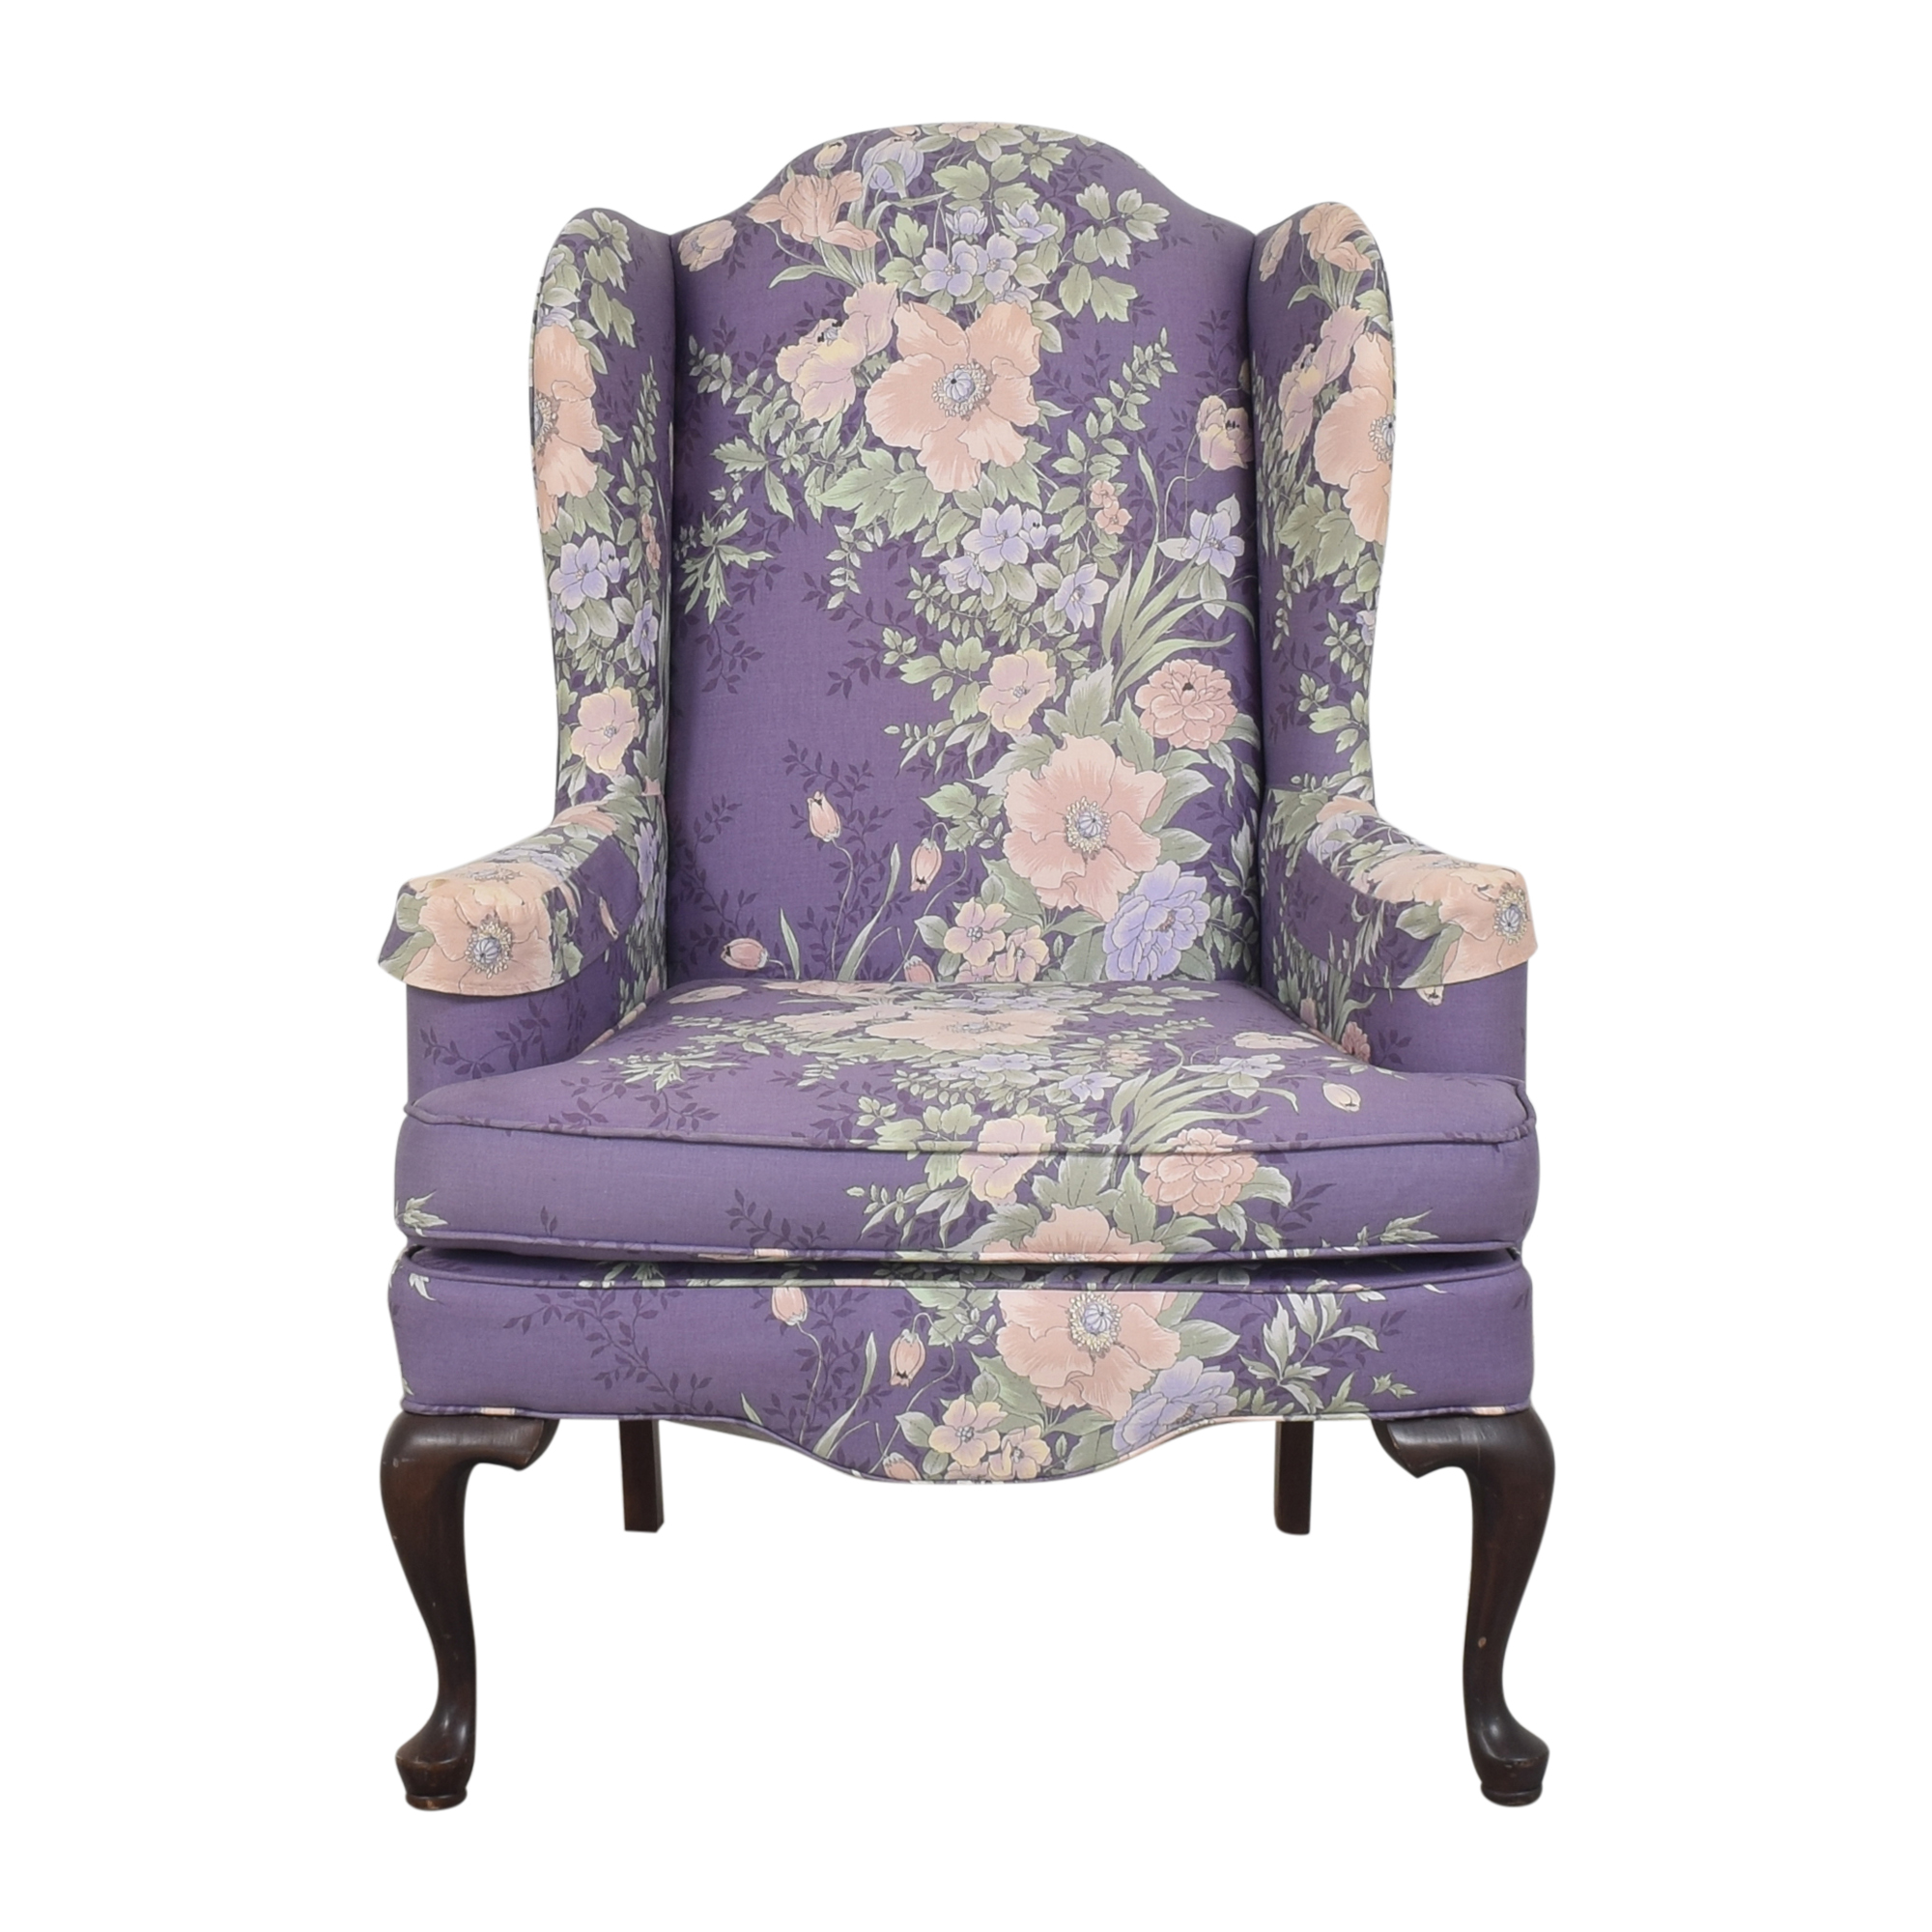 Ethan Allen Ethan Allen Traditional Classics Wing Chair Accent Chairs